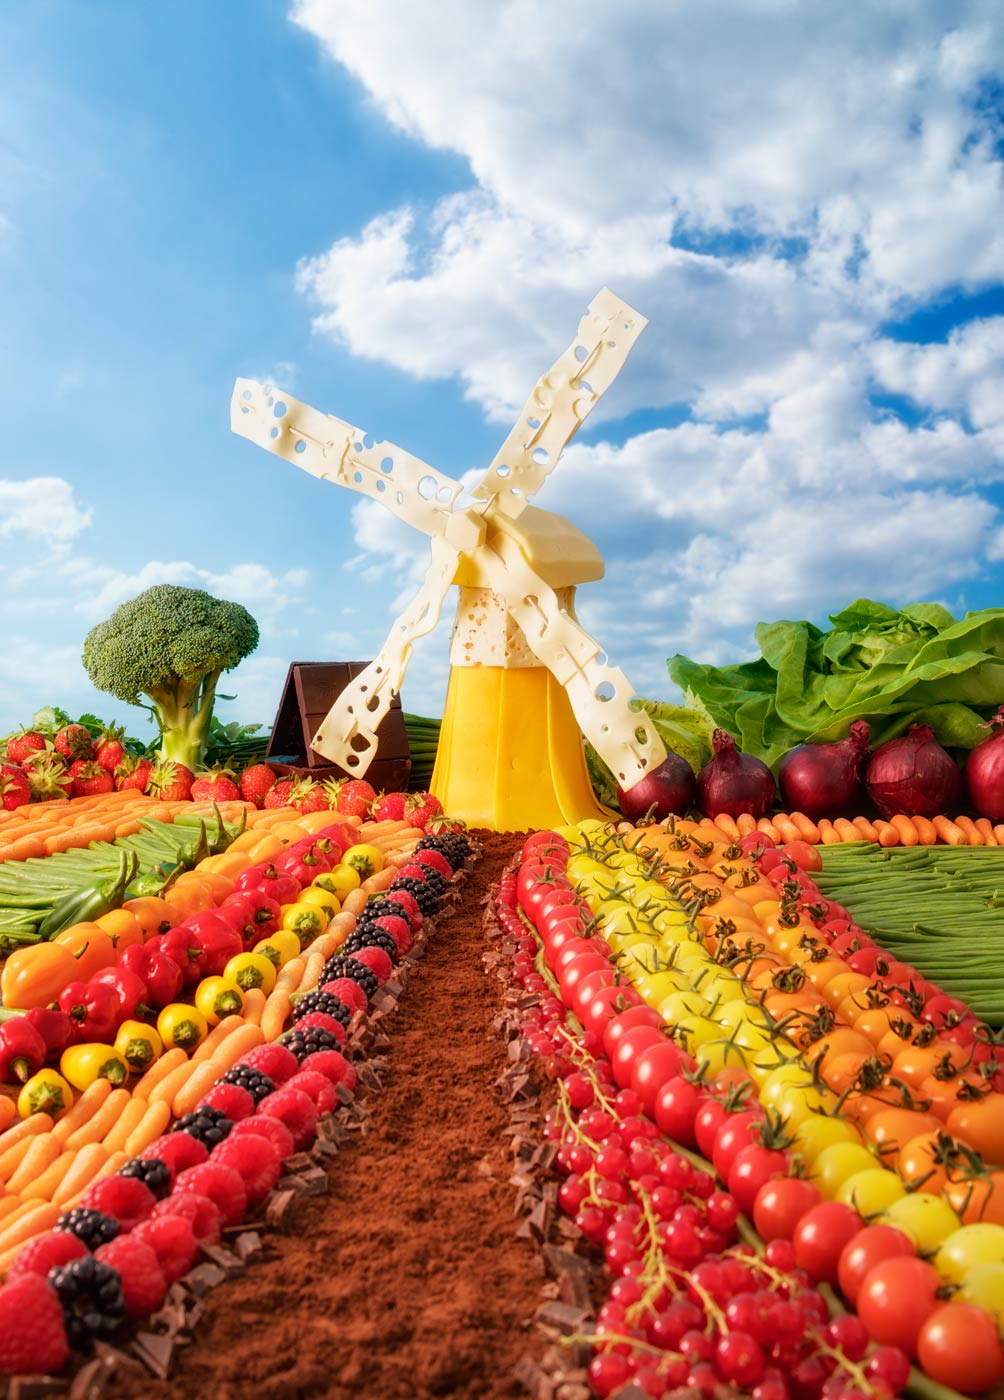 A dutch landscape with windmill made out of cheese, fruit, vegetables and cocoa